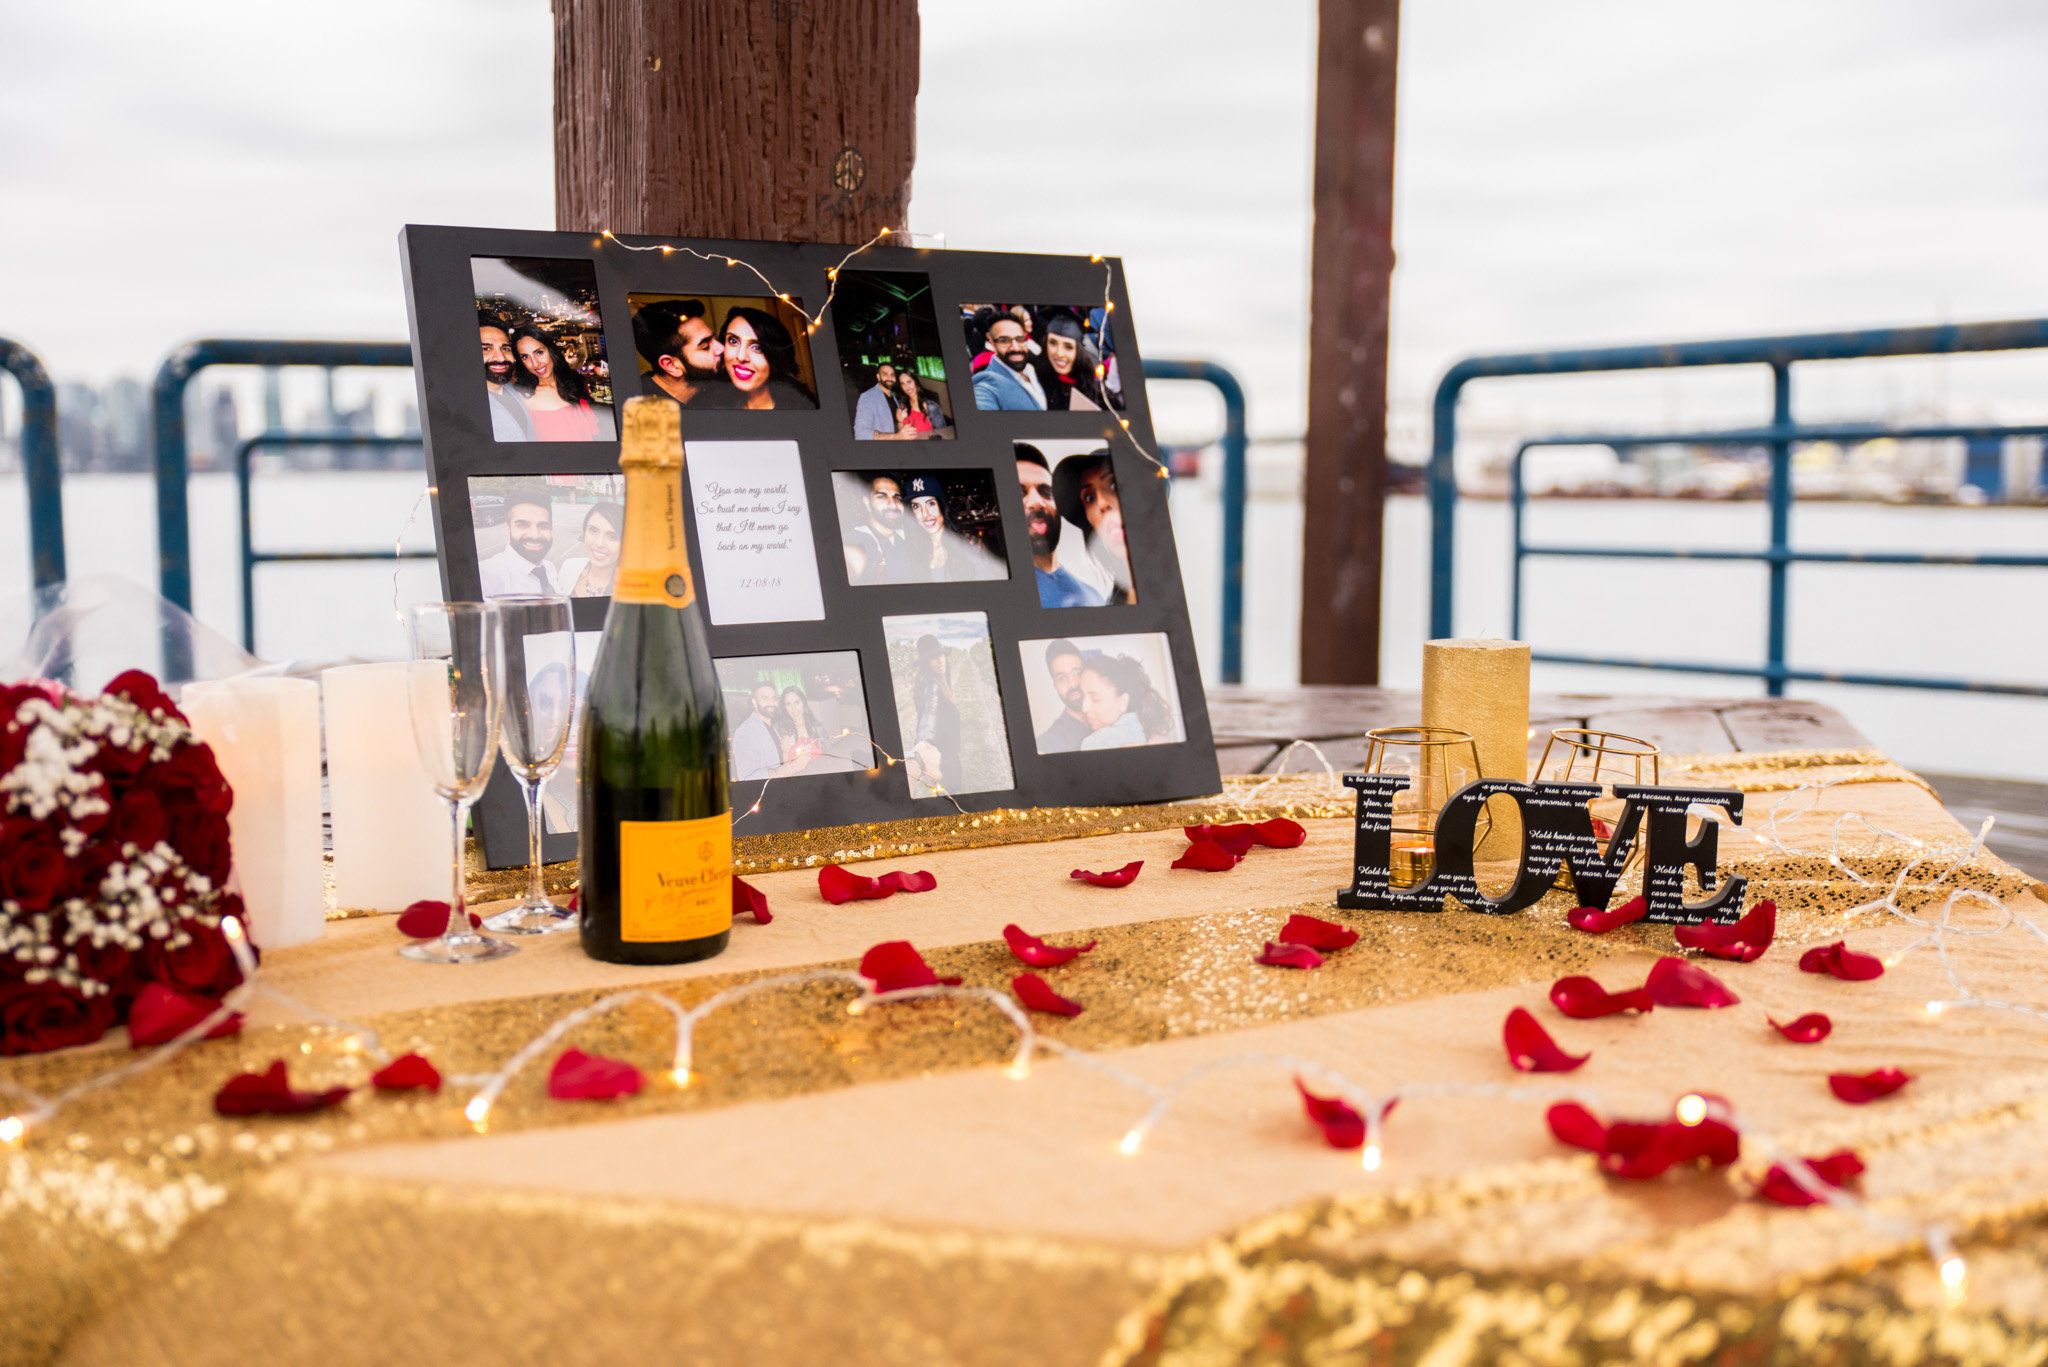 Lonsdale Quay Proposal Photographer-3.JPG